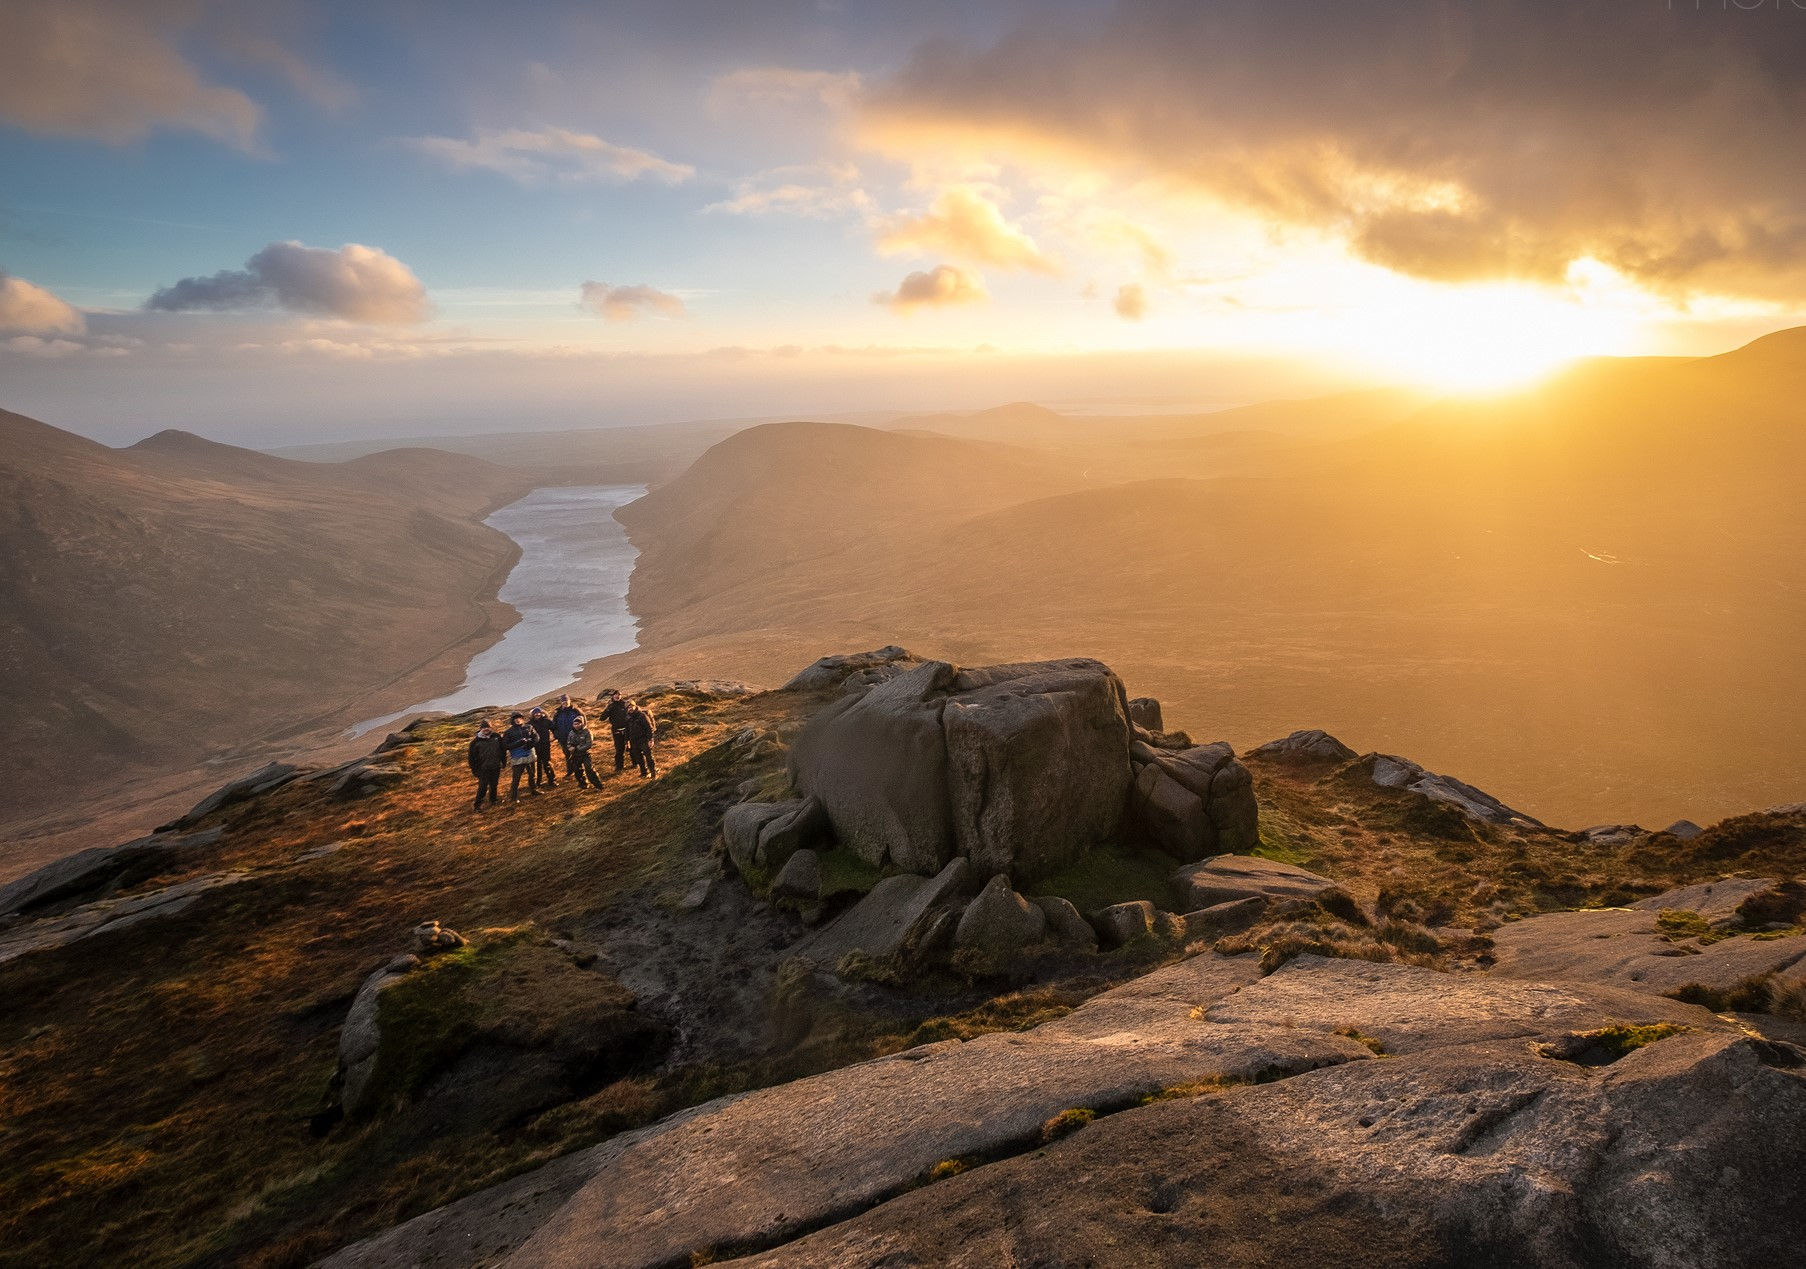 A workshop group experience a stunning sunset on the summit of Doan in the Mourne mountains